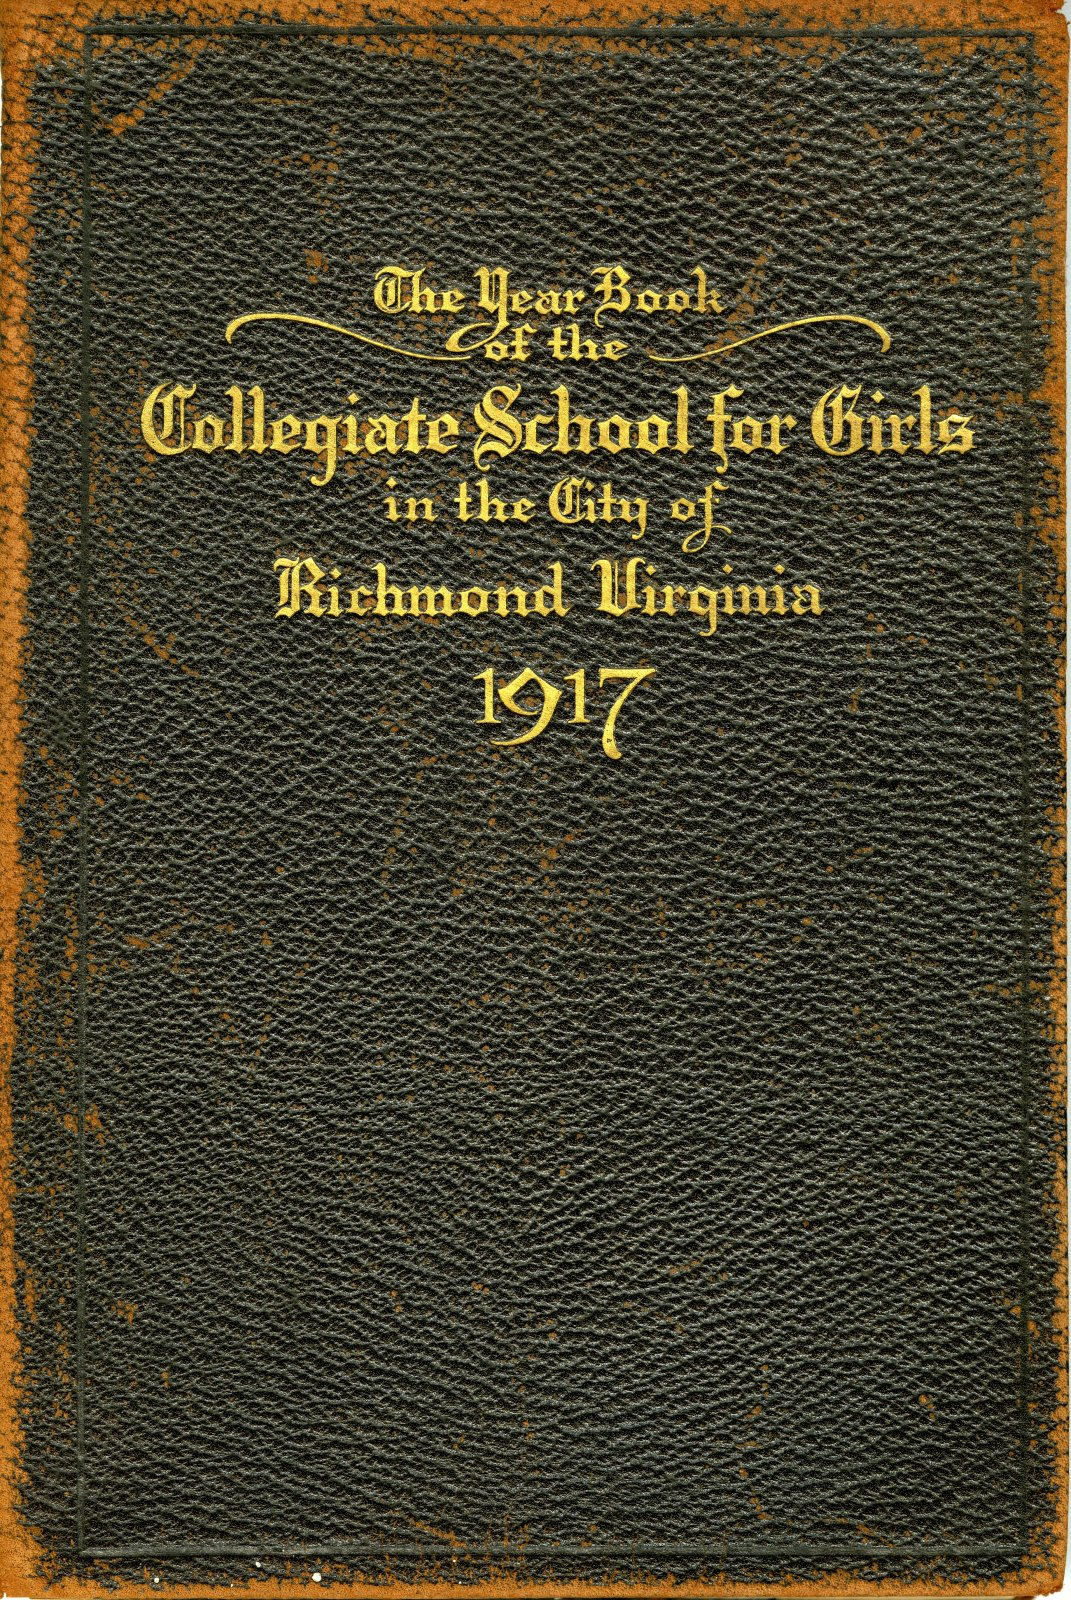 ""\""""The Year Book of the Collegiate School for Girls in the City of Richmond, 1917""""""1071|1600|?|en|2|fec168daced9a7fe8e2b200ef6bf6a02|False|UNLIKELY|0.42889103293418884